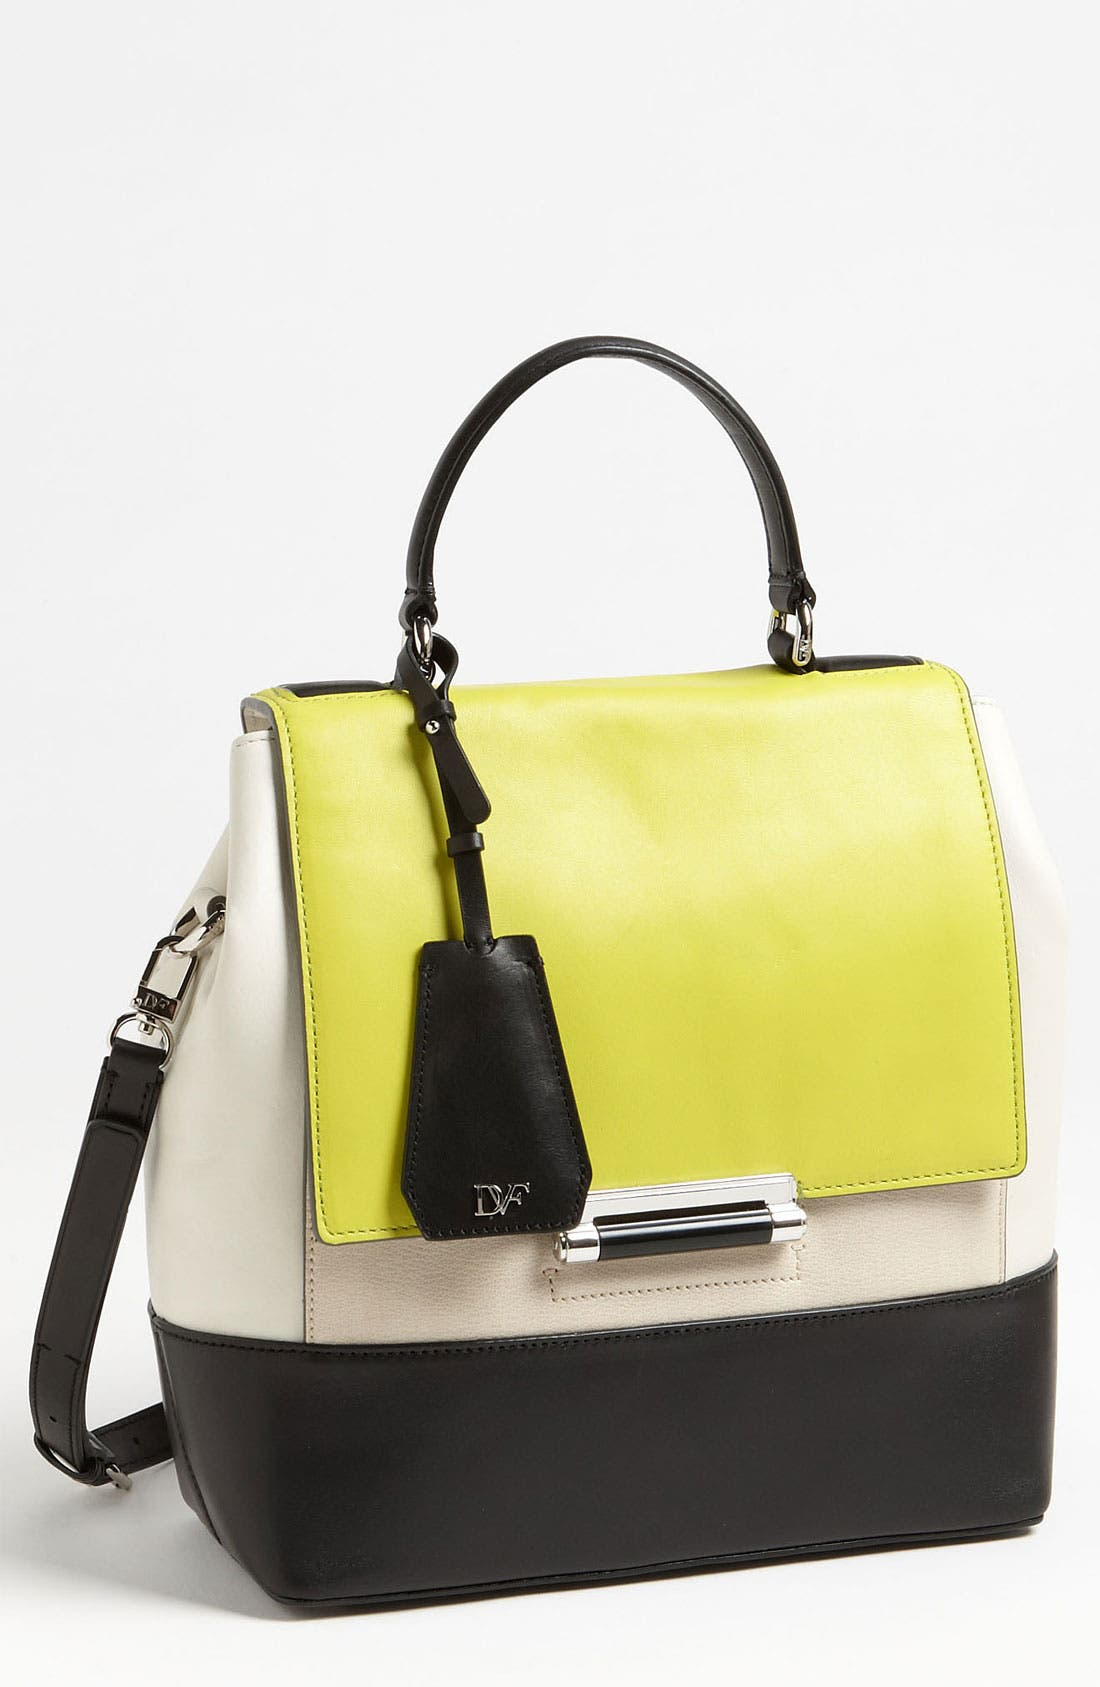 Main Image - Diane von Furstenberg '440 Top Handle - Small' Colorblock Satchel